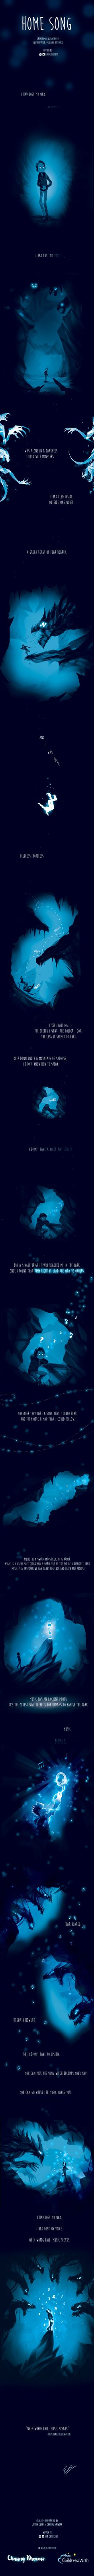 Home Song by ChasingArtwork on DeviantArt